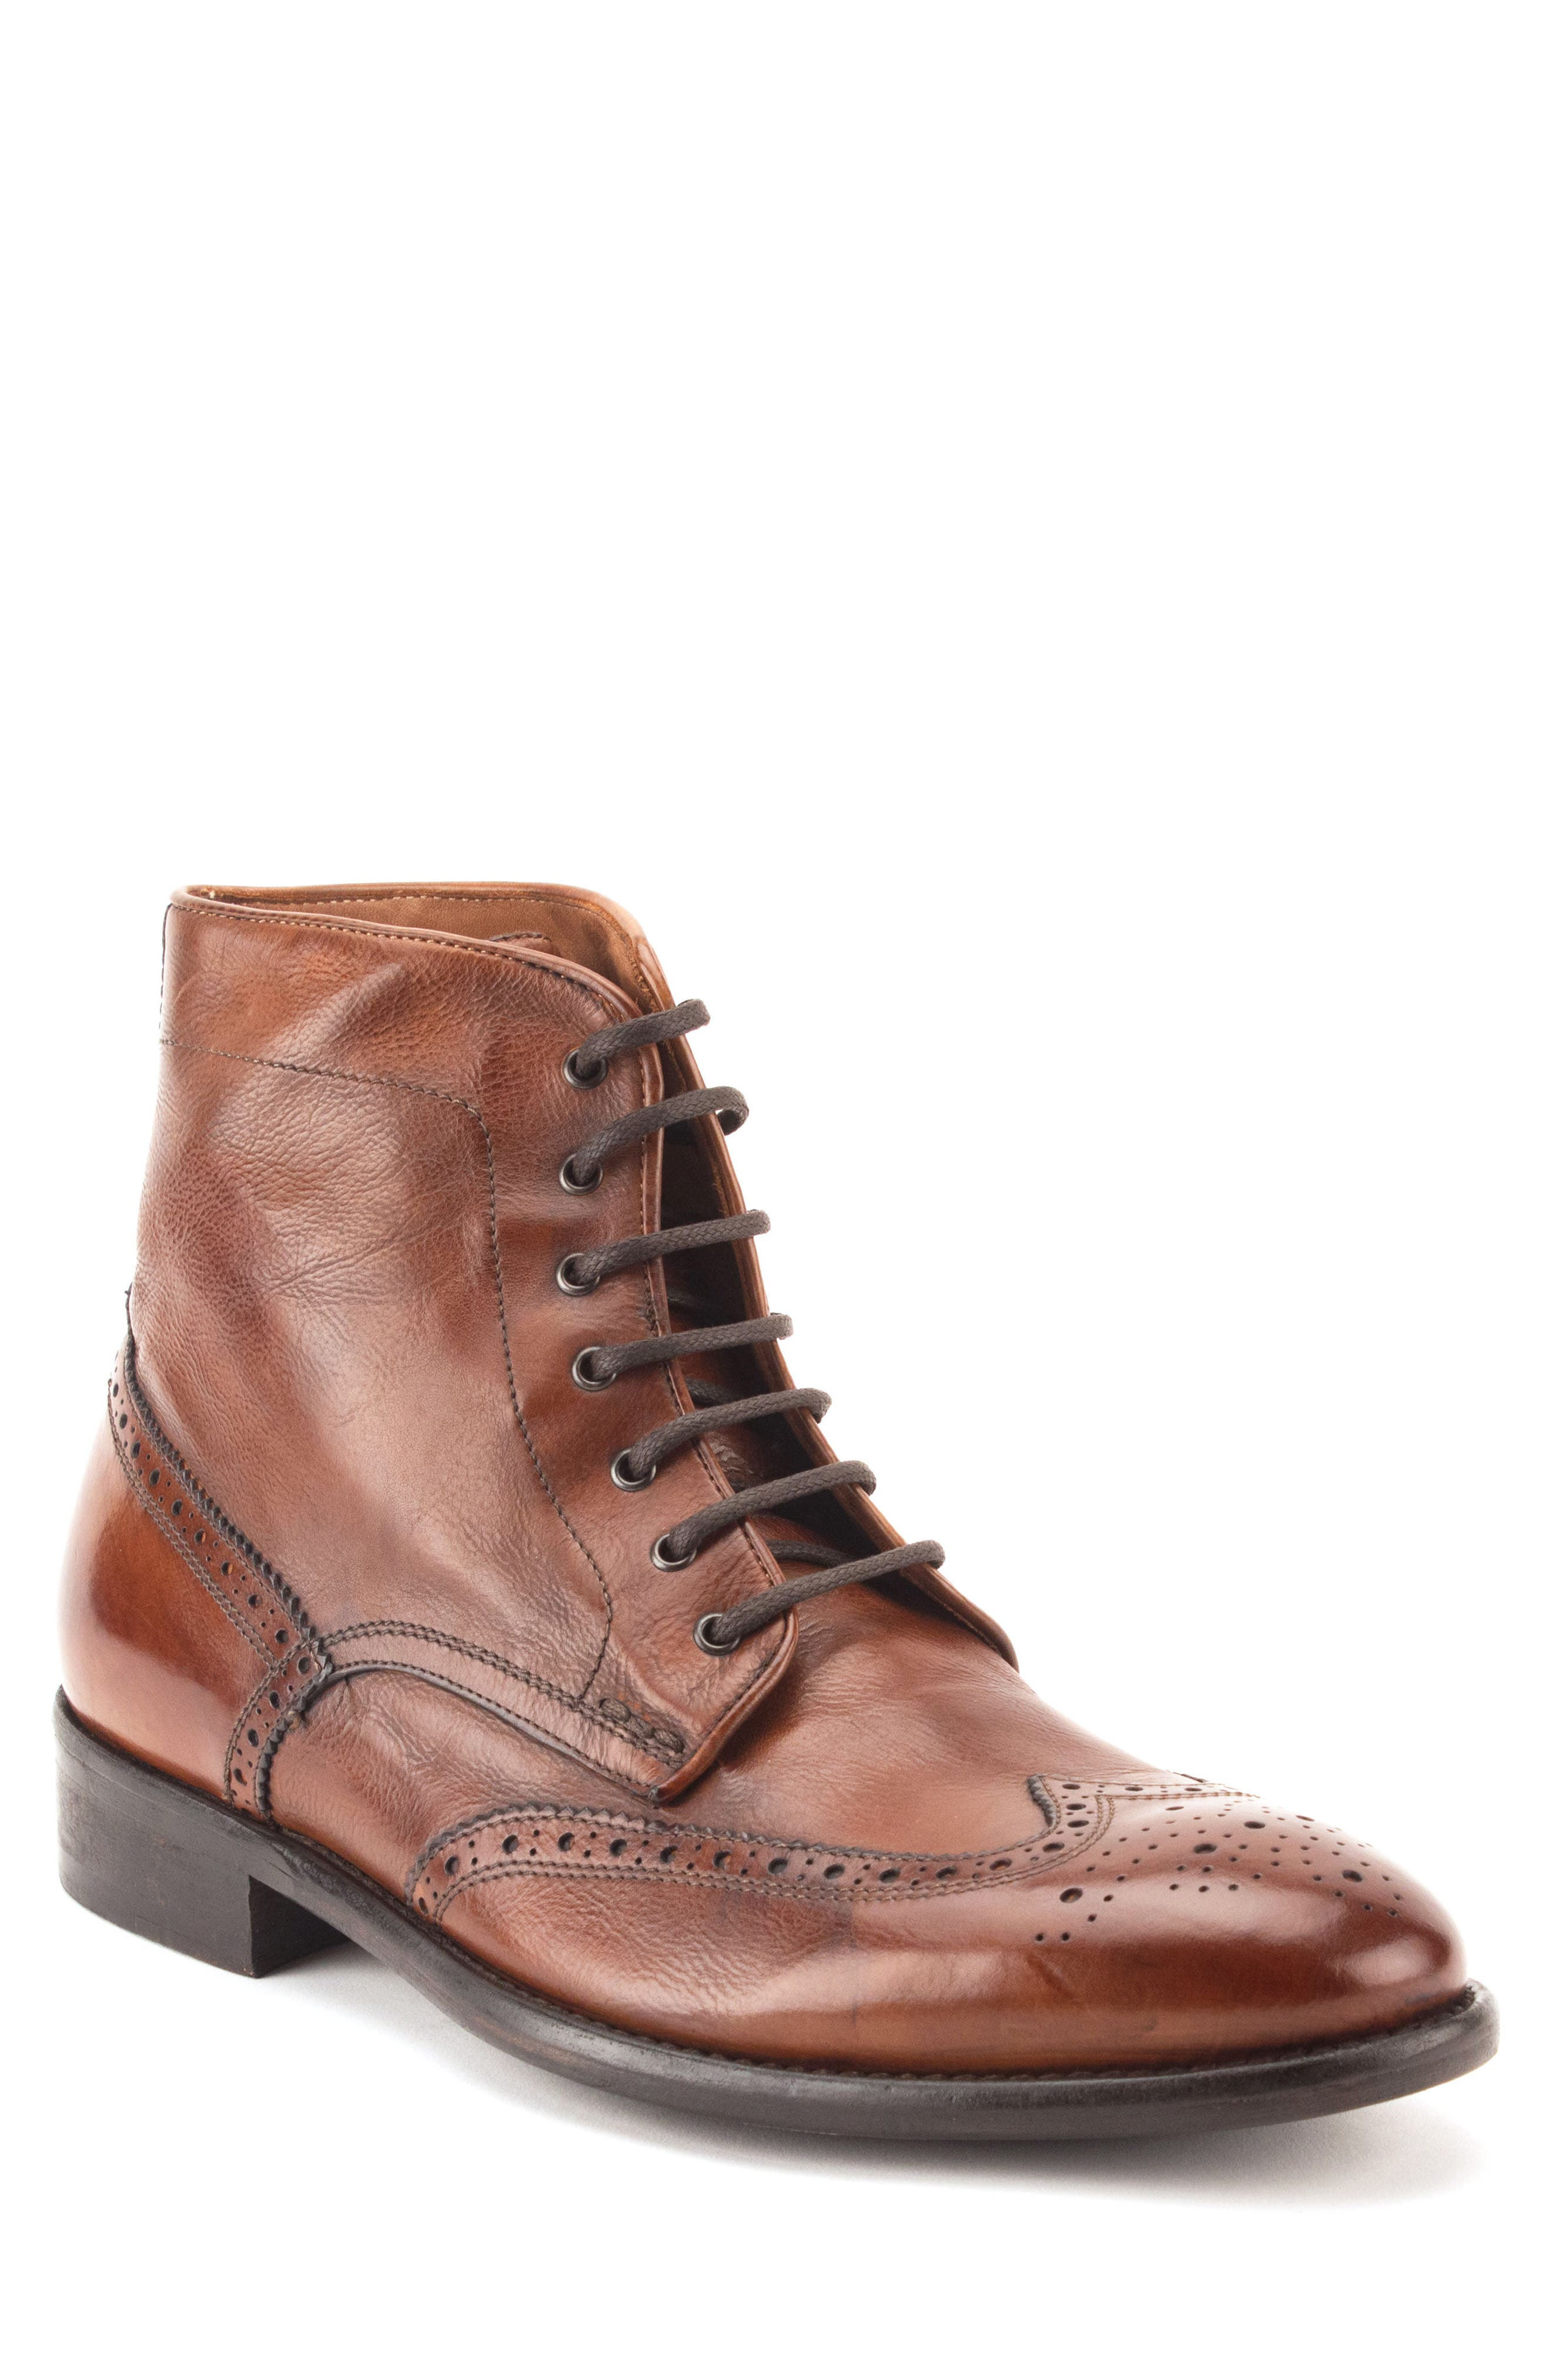 Maxfield Wingtip Boot,                         Main,                         color, Cognac Leather